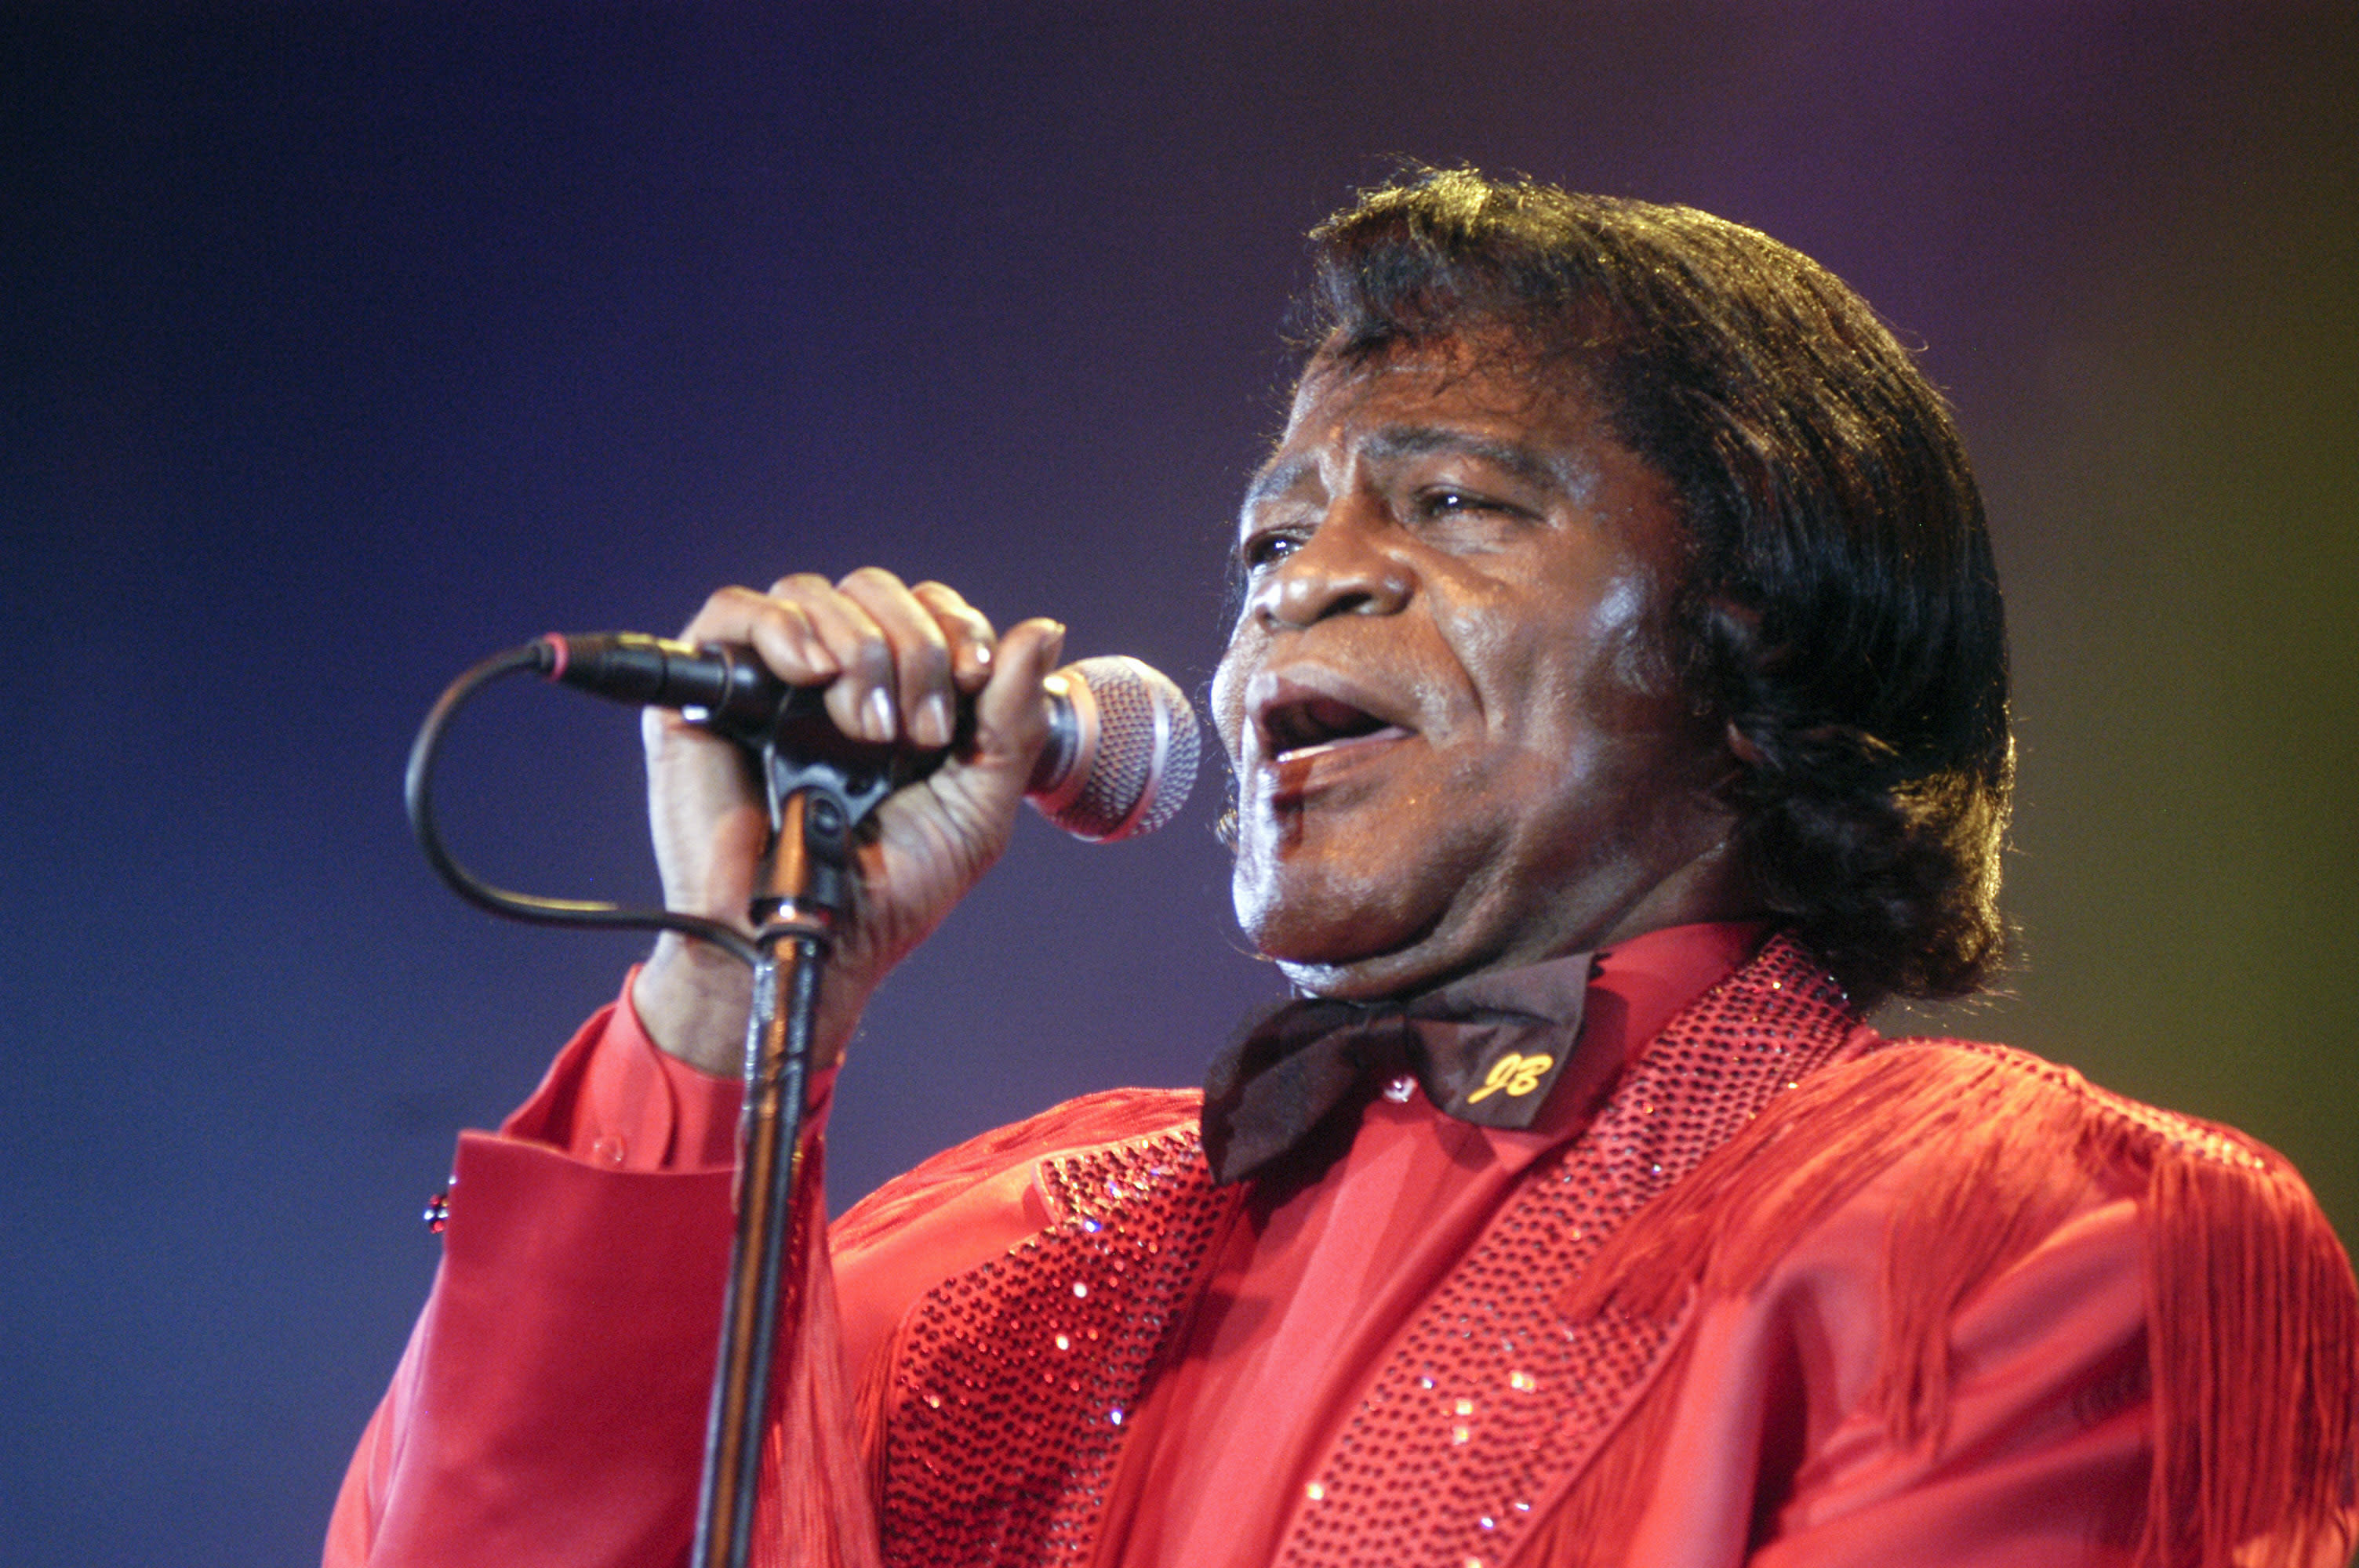 Prosecutor may open new investigation into James Brown's death